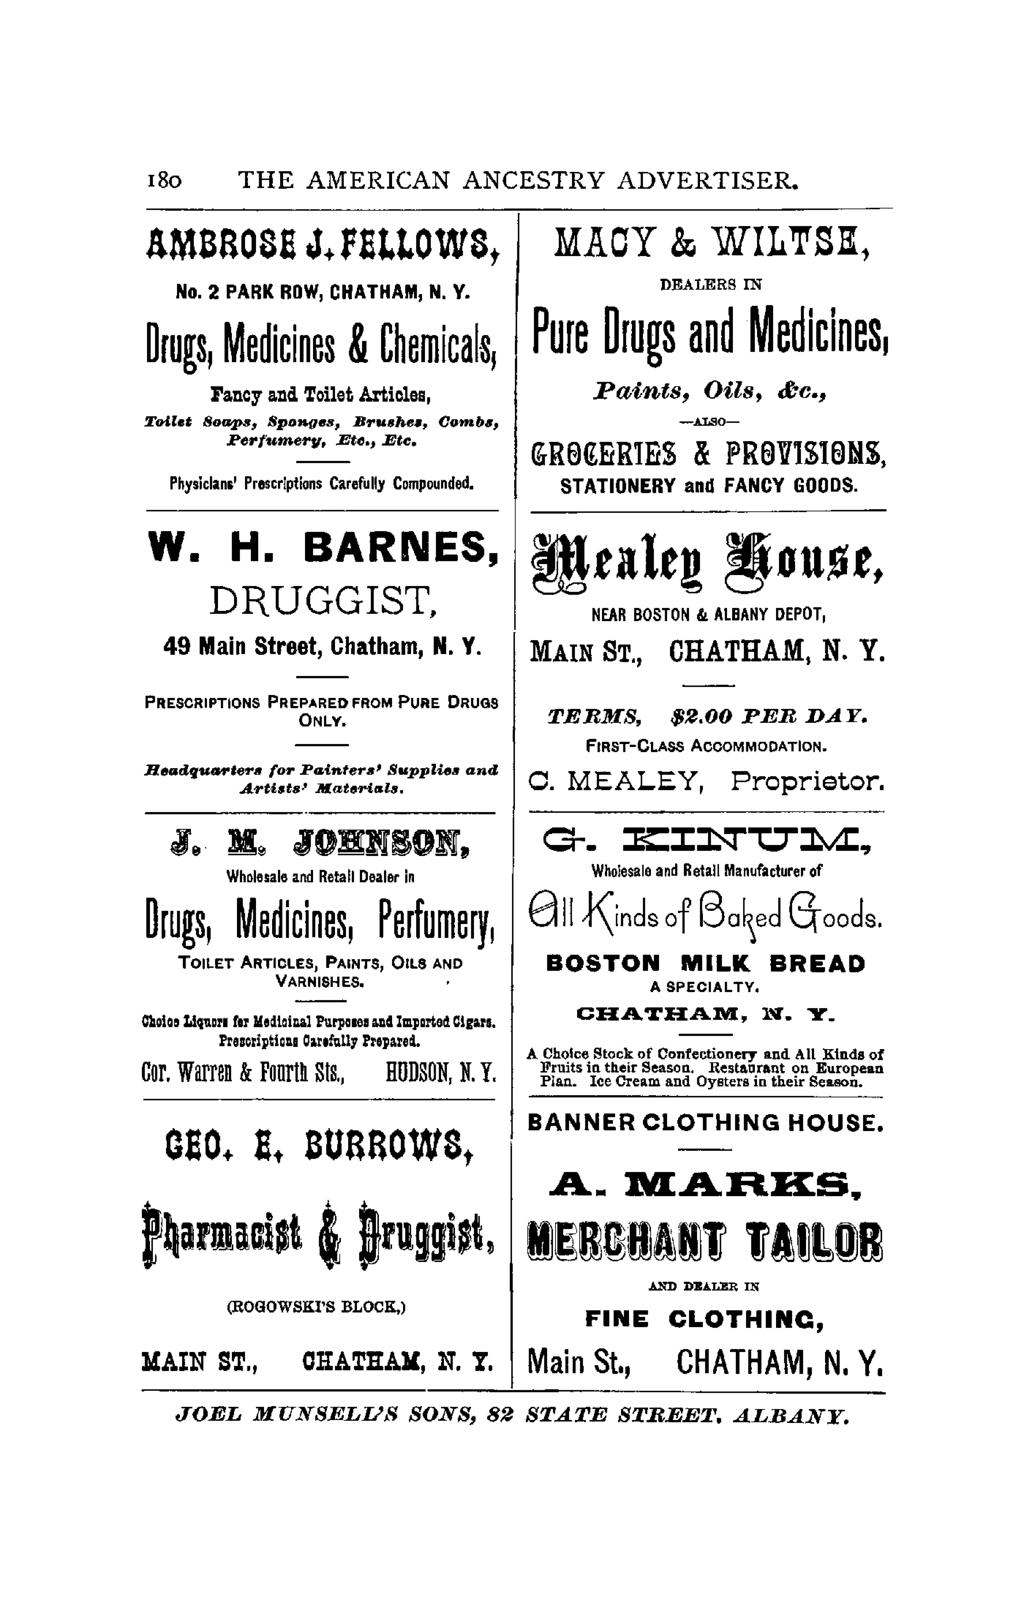 "180 THE AMERICAN ANCESTRY ADVERTISER. No.2 PARK ROW, CHATHAM, N. Y. Drugs, Medicines & C~emicals, Fa.ncy a.nd Toilet Articles, Toilet Soaps, SpoRges, Bru.hes, (Jomb., Perfumer"", Eto., Etc."